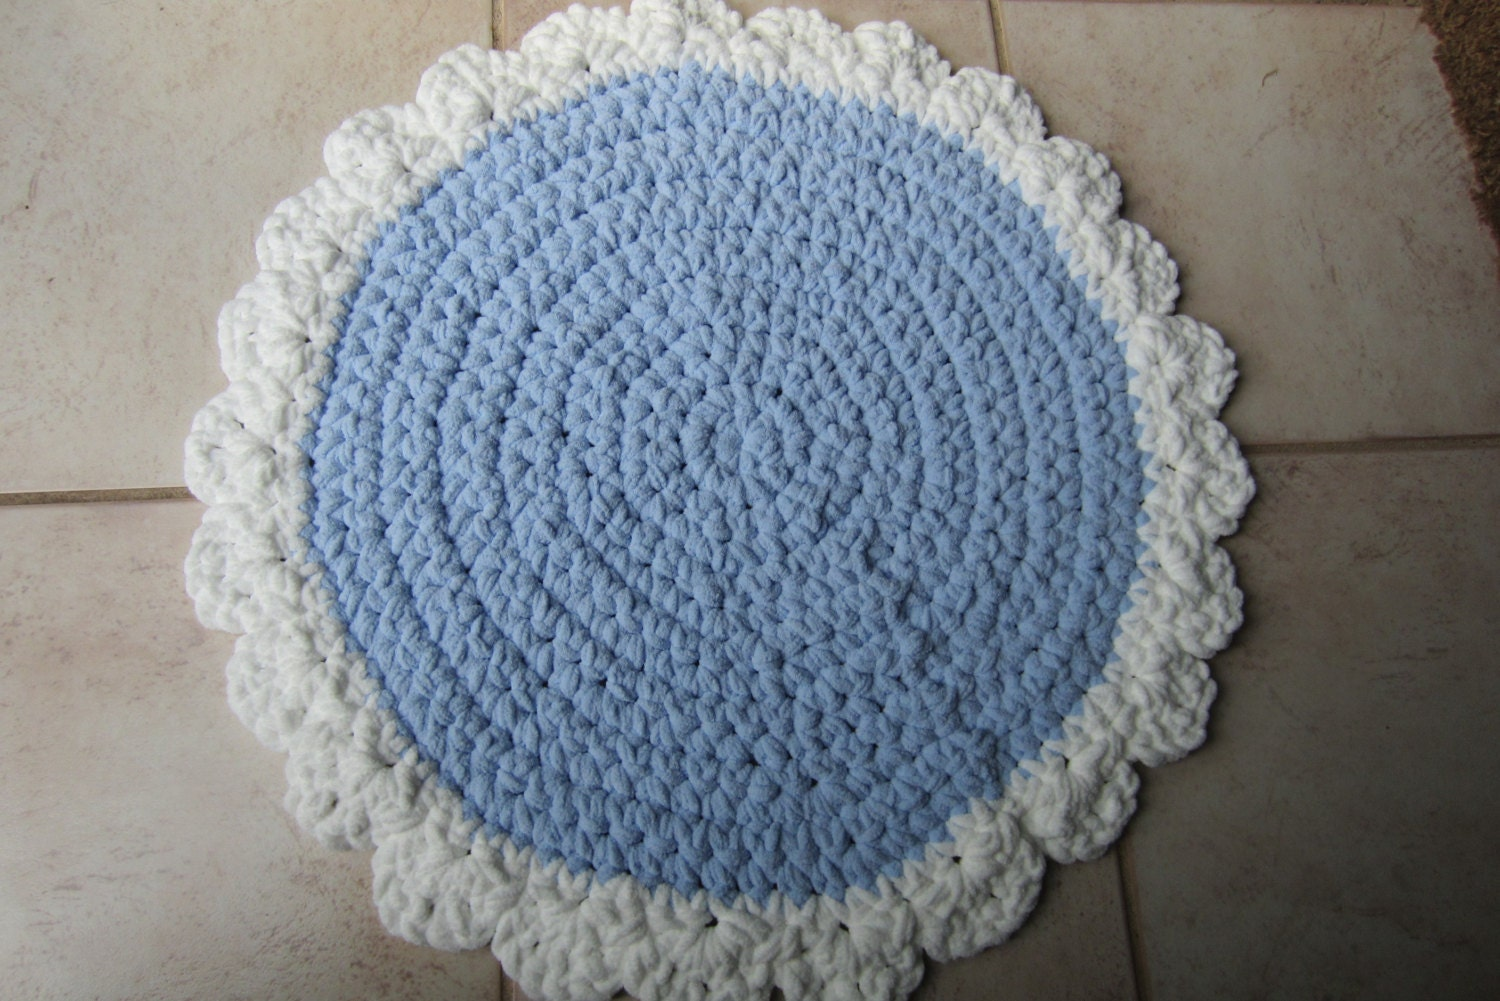 crocheted round rug rag rug style washable throw rug soft blue and white